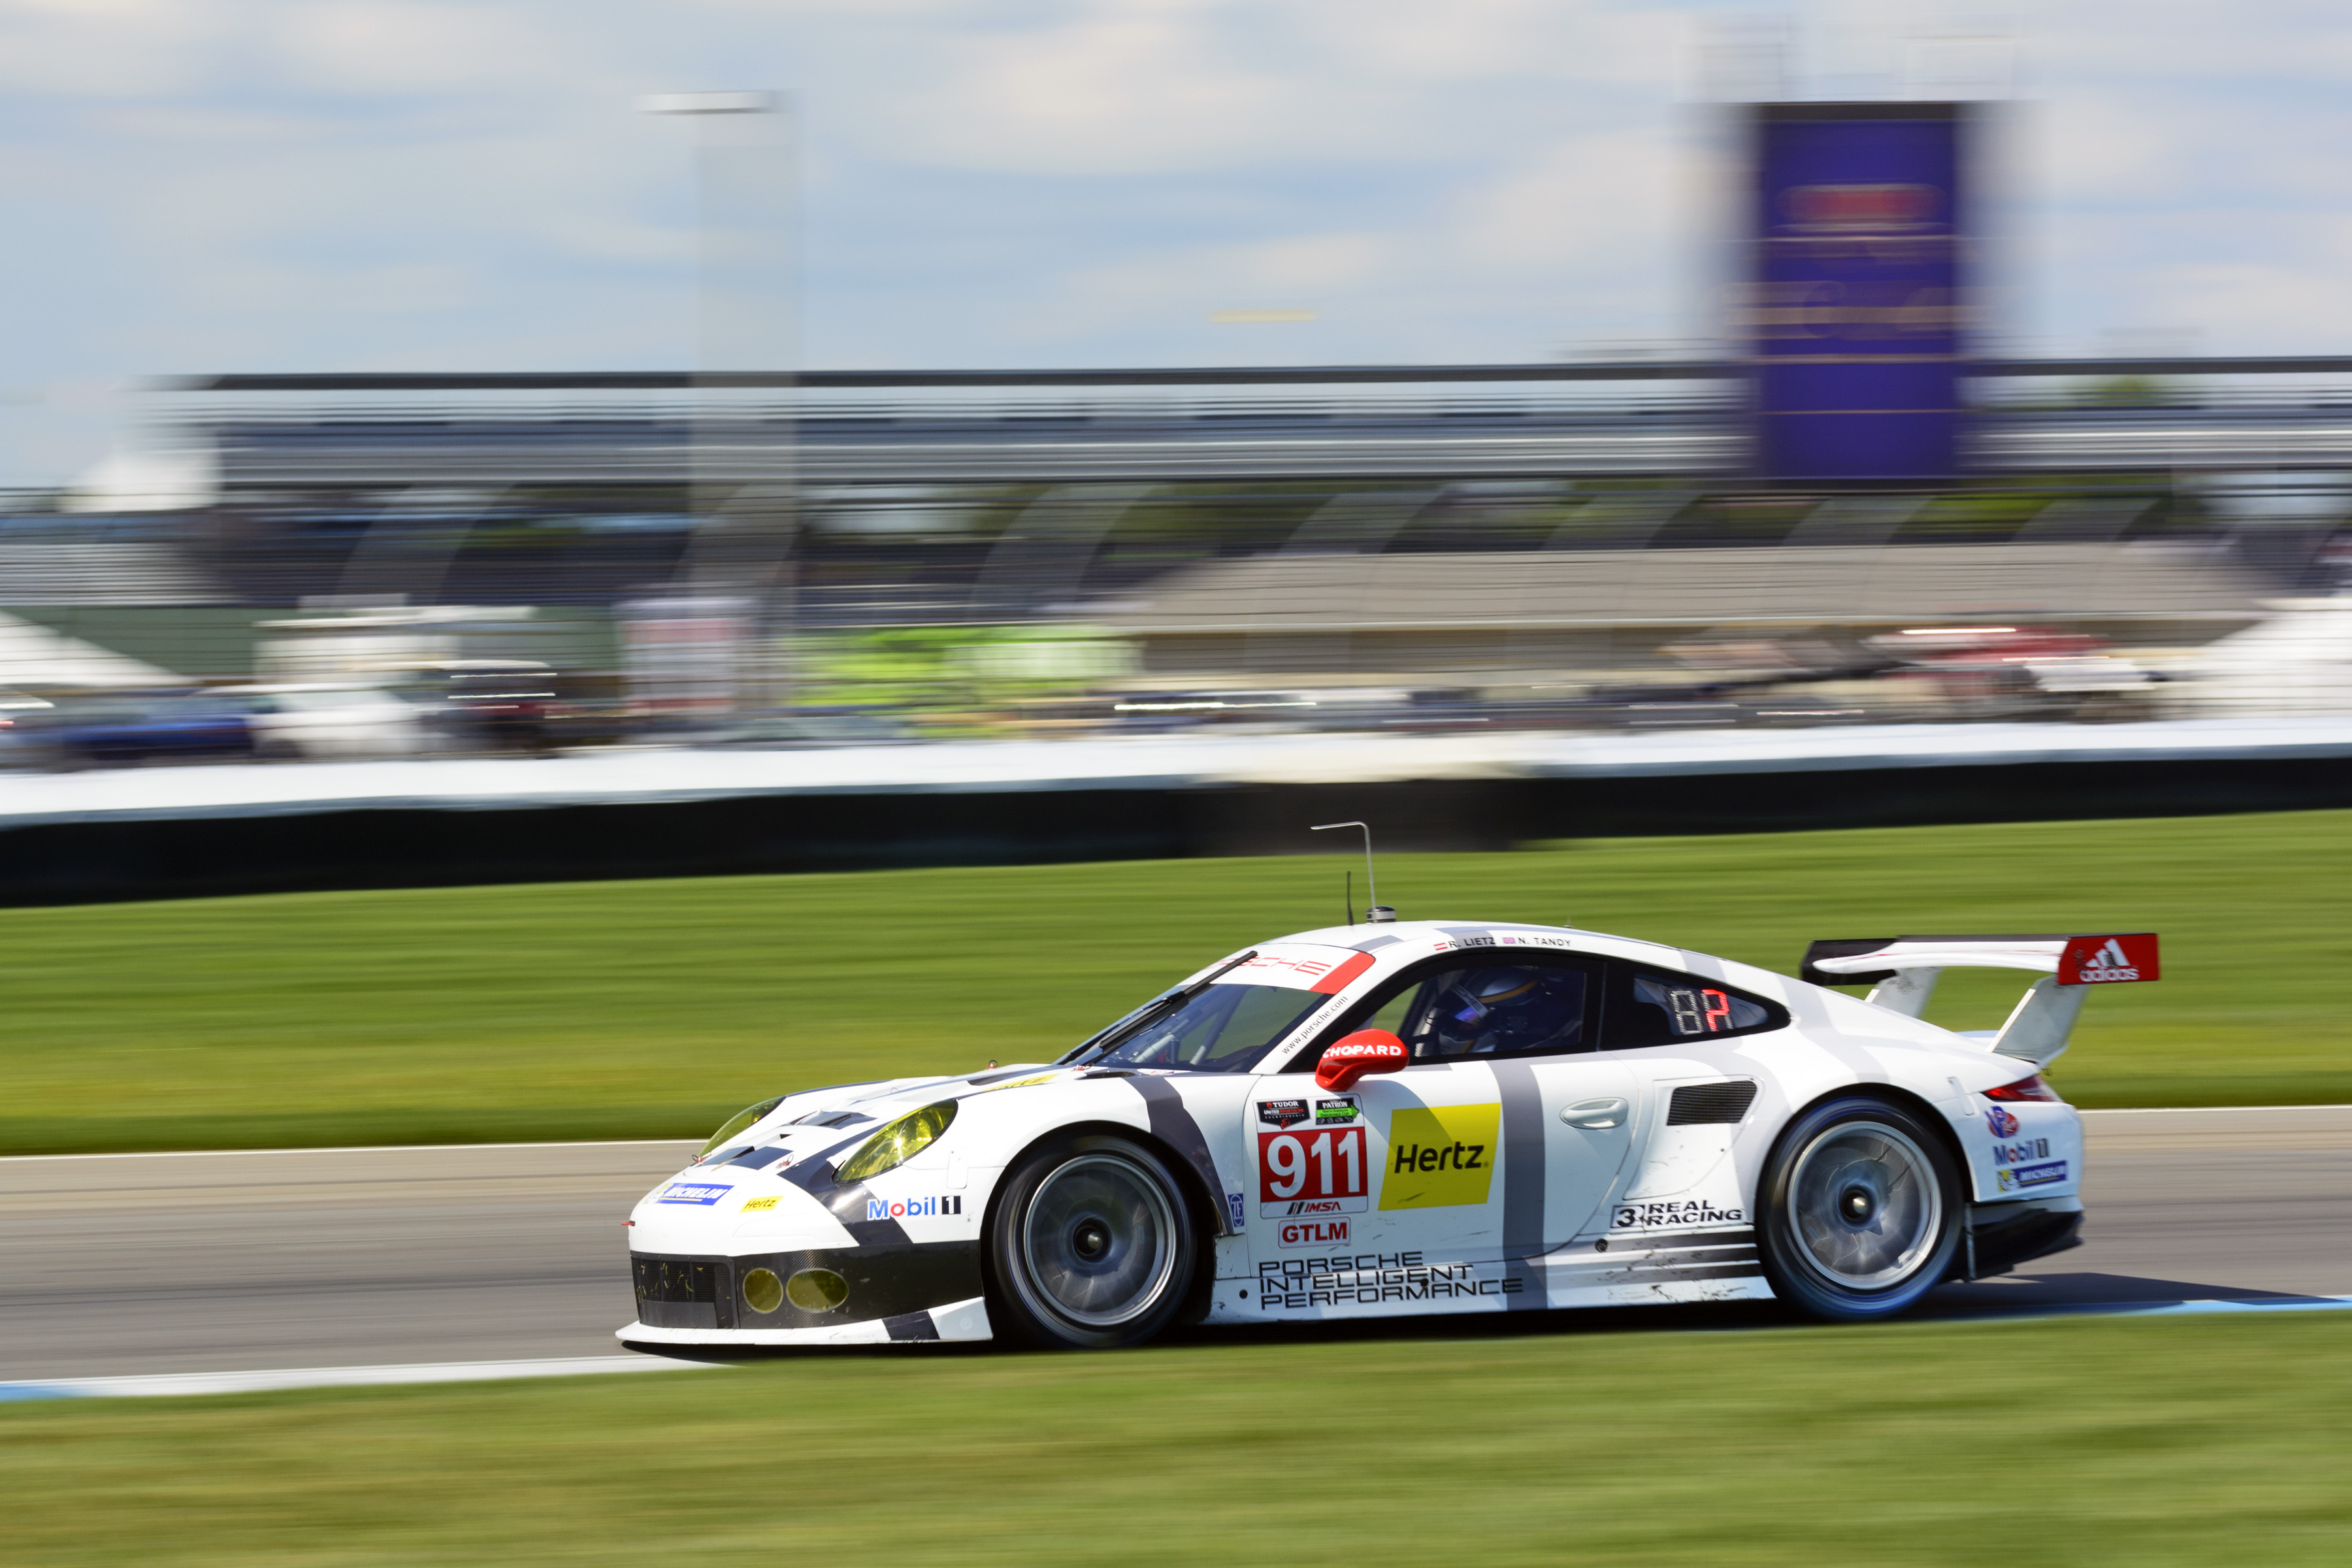 Nick Tandy pilots the No. 911 Porsche North America Porsche 911 RSR through the Indy infield, PCNA